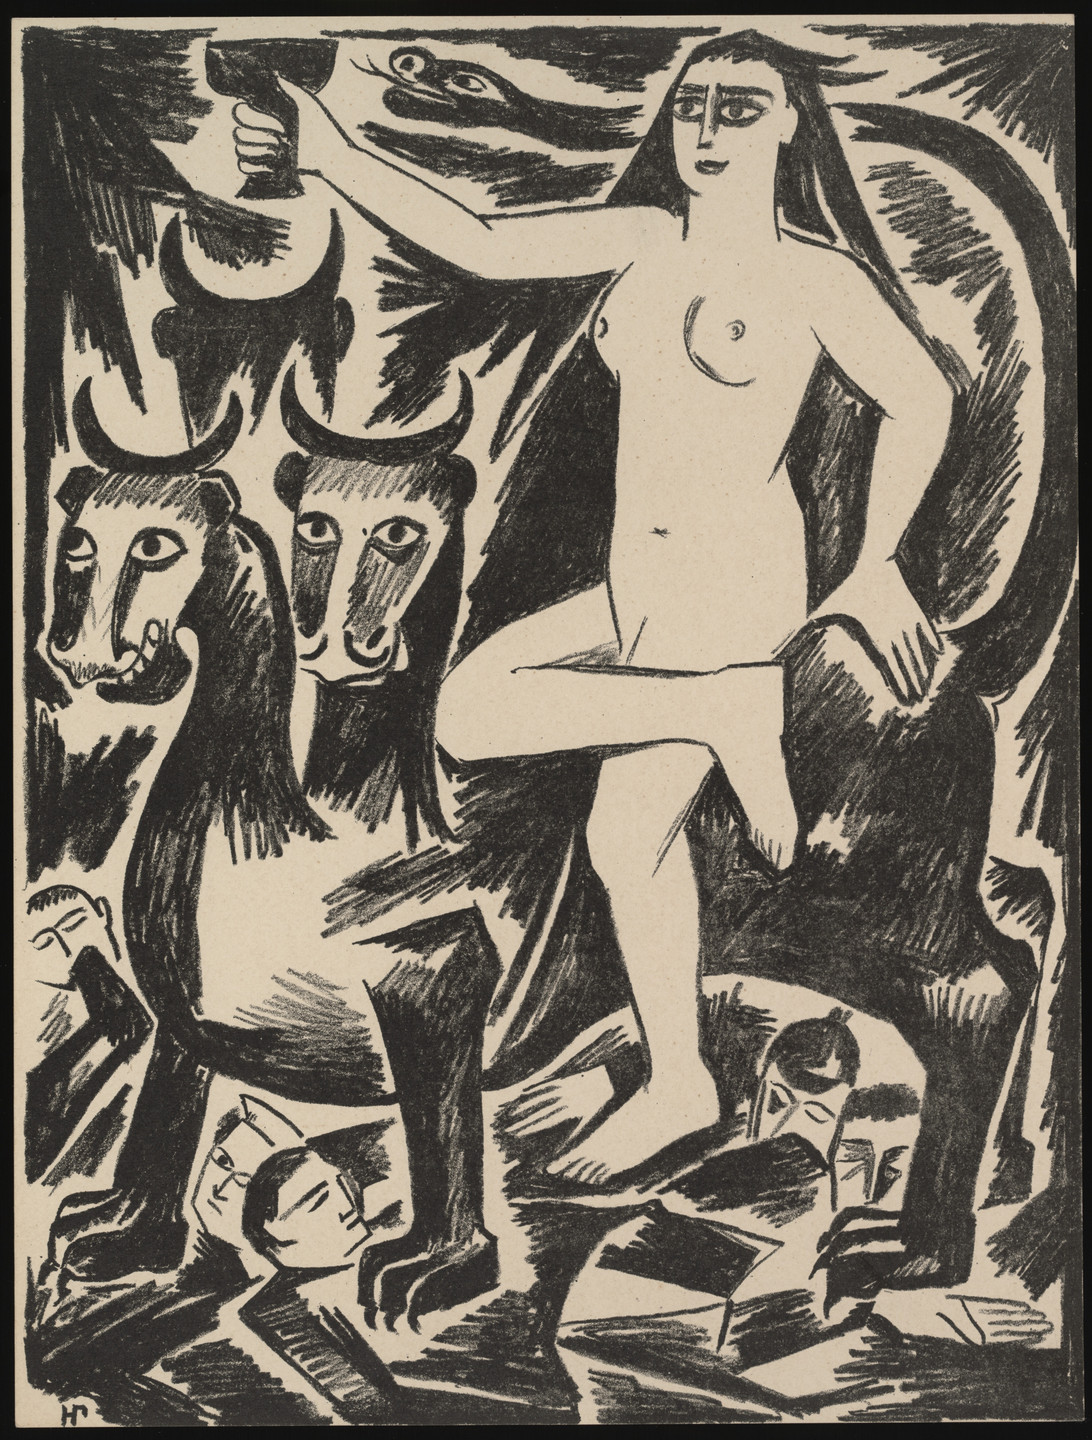 Natalia Goncharova. Deva Na Zvere (Maiden on the Beast) from Misticheskie obrazy voiny. 14 litografii (Mystical Images of War: Fourteen Lithographs). 1914